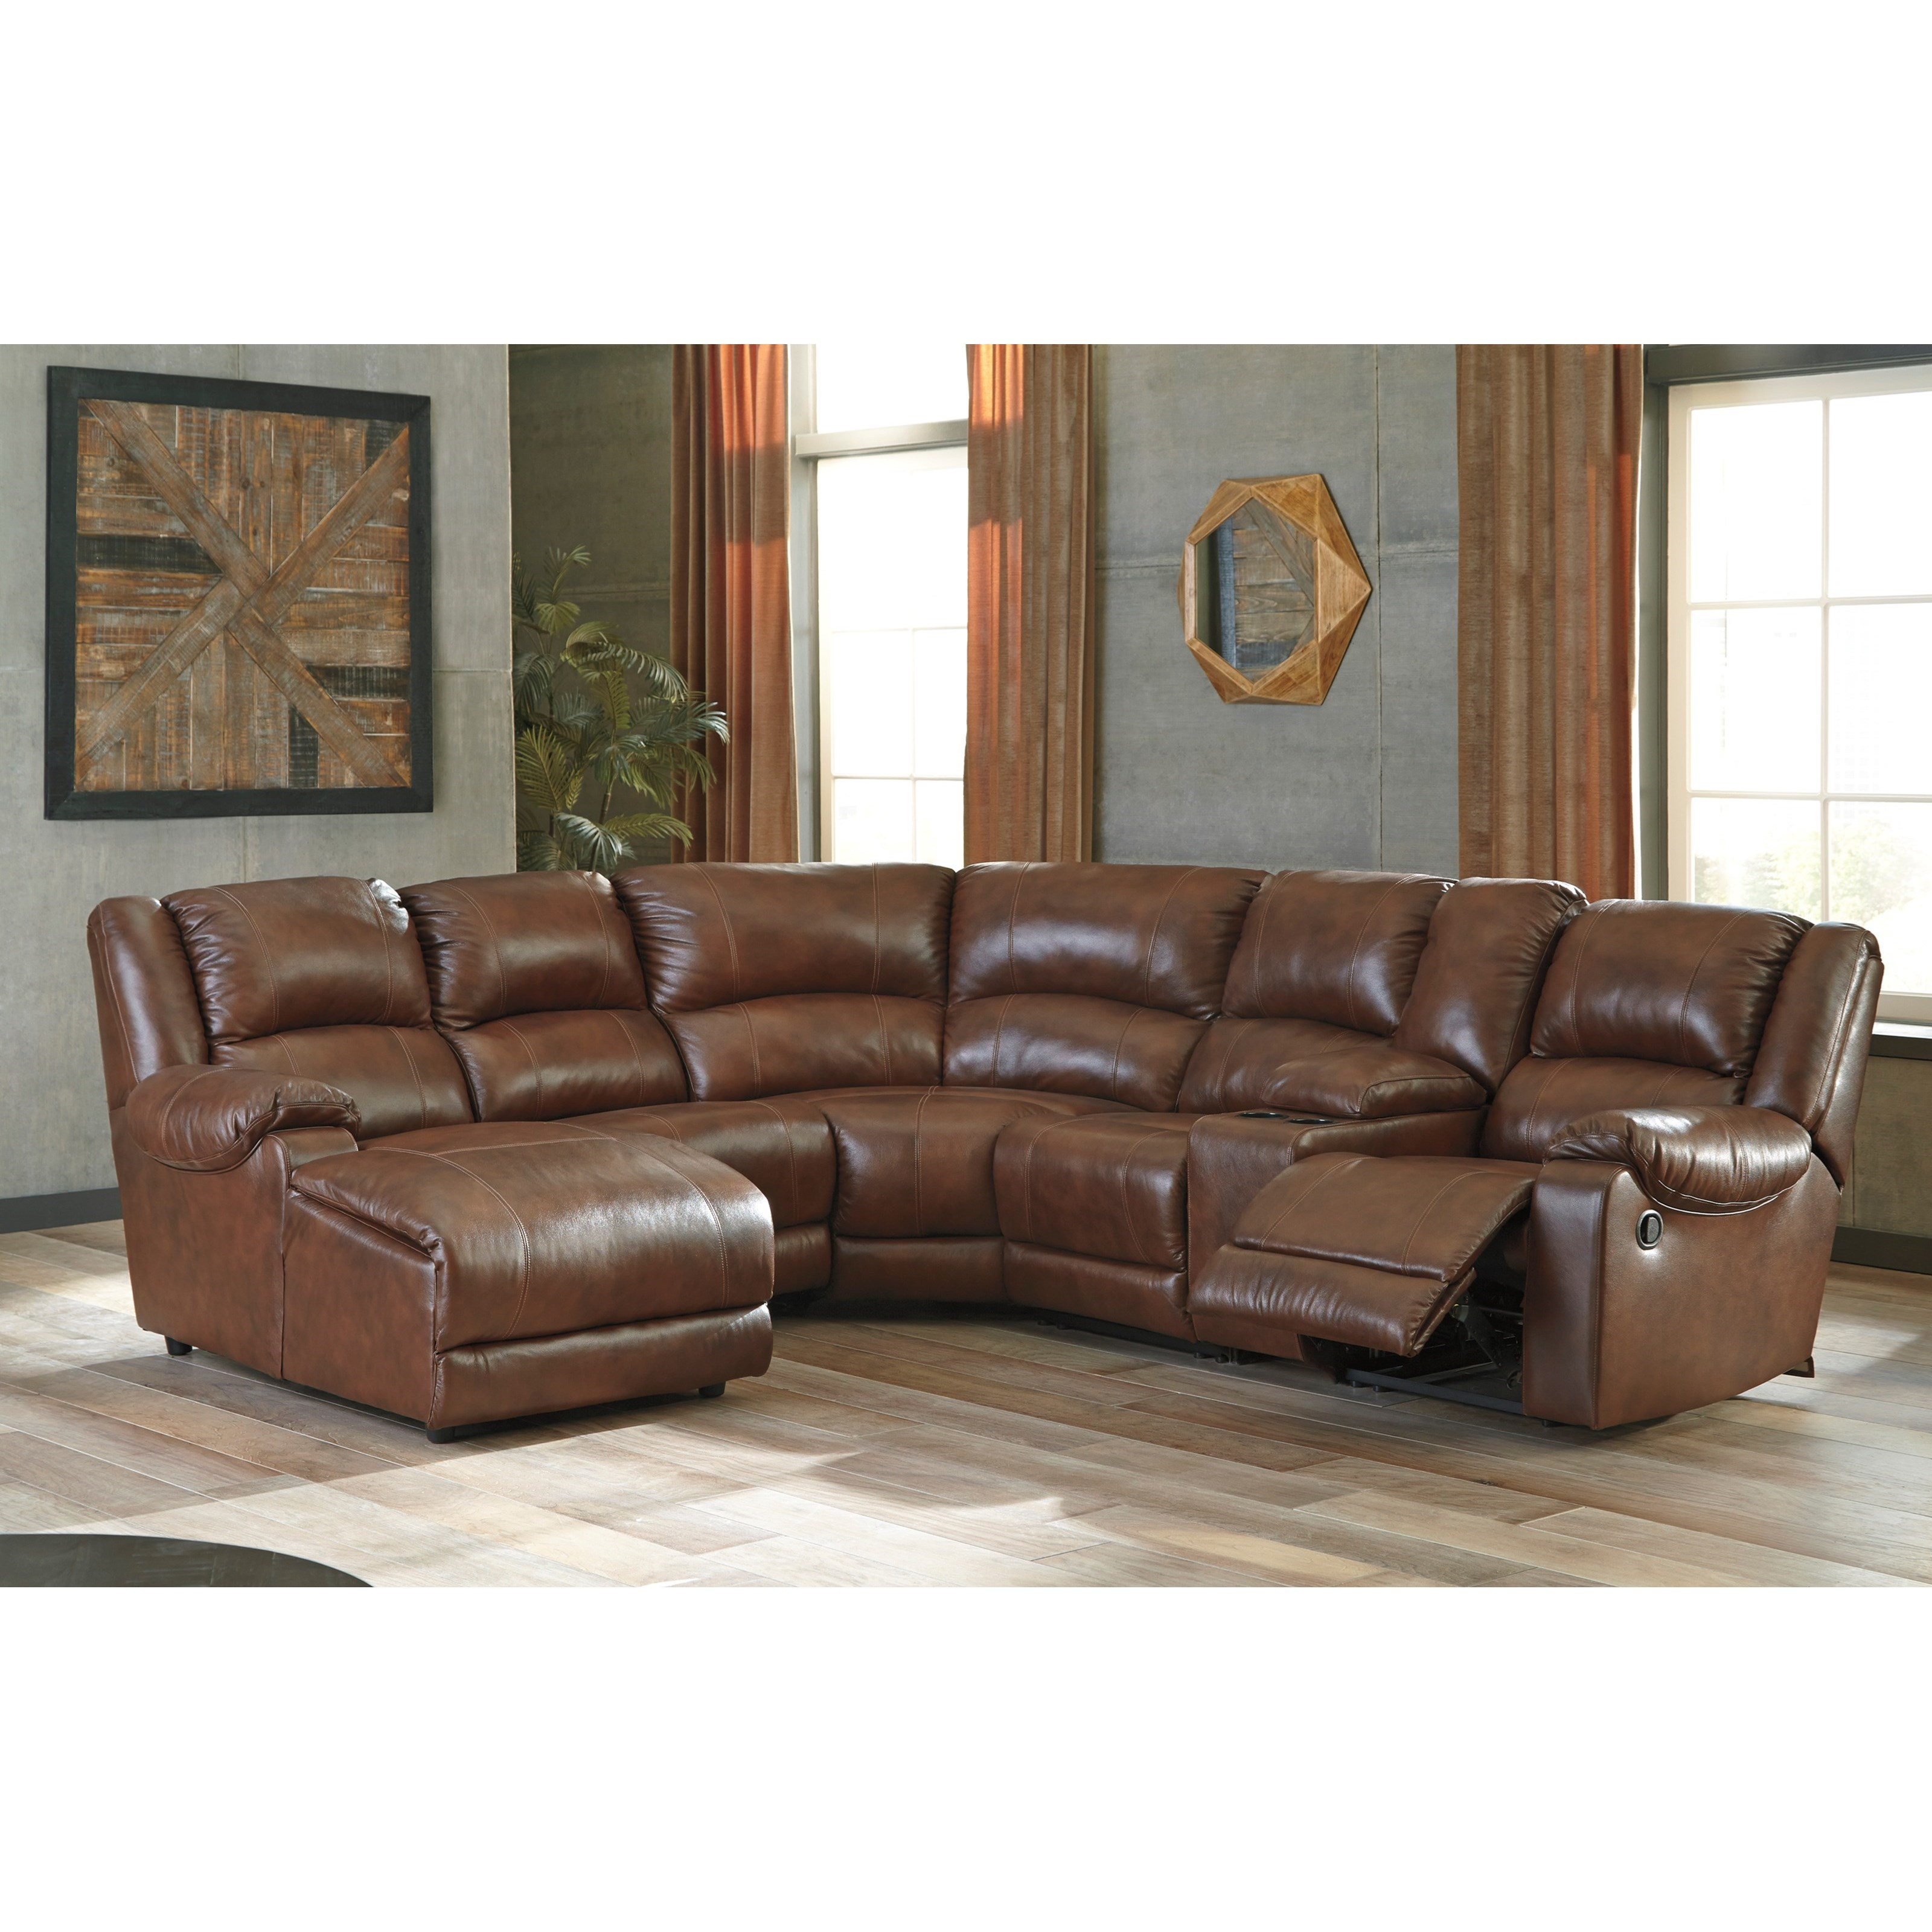 Signature design by ashley billwedge leather match for Ashley reclining sectional with chaise